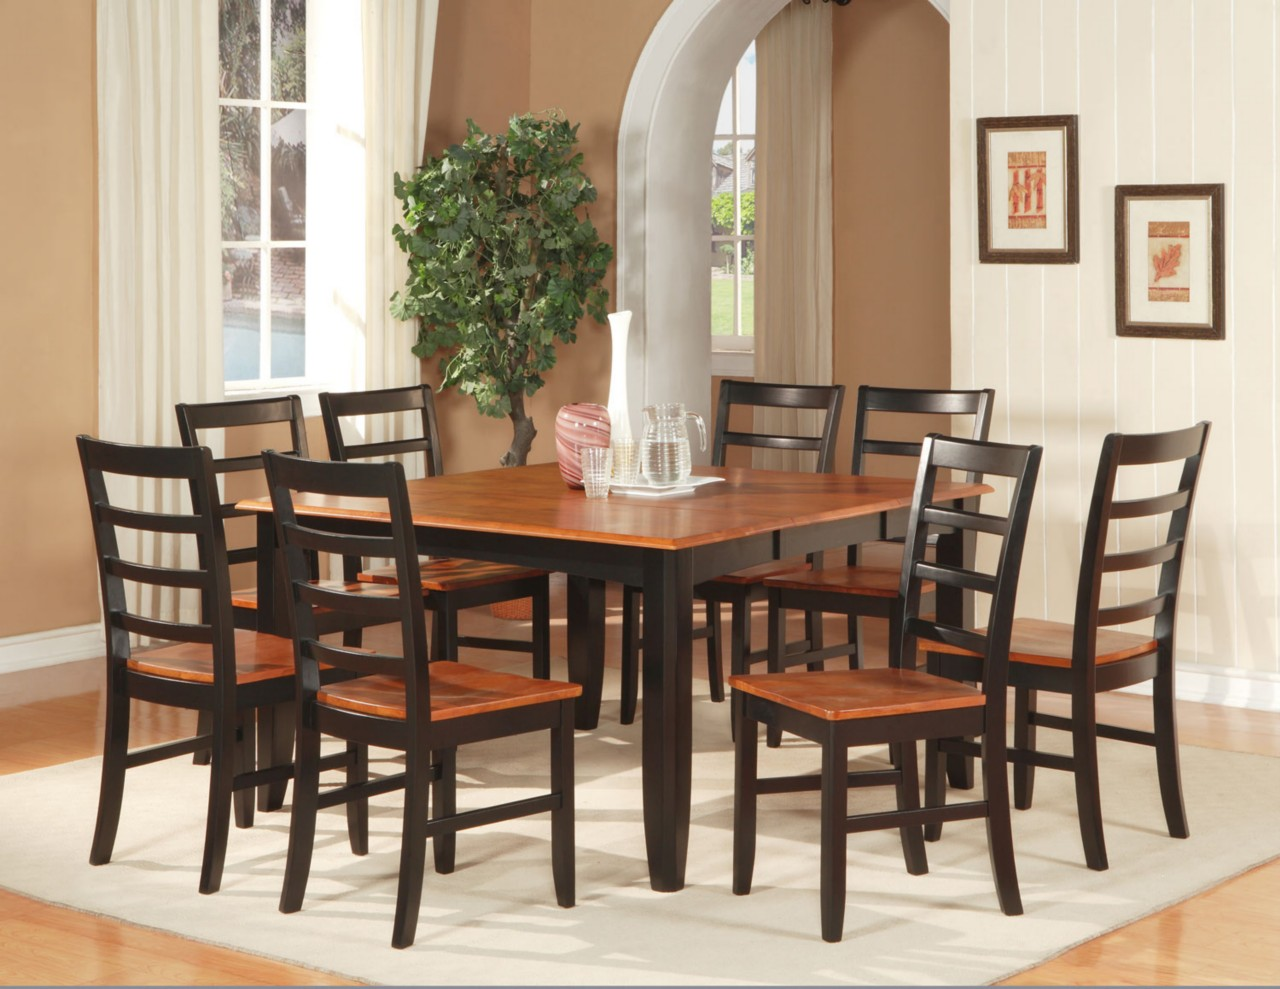 dining room table for 8 kitchen table chairs Table For 8 Contemporary Square Dining